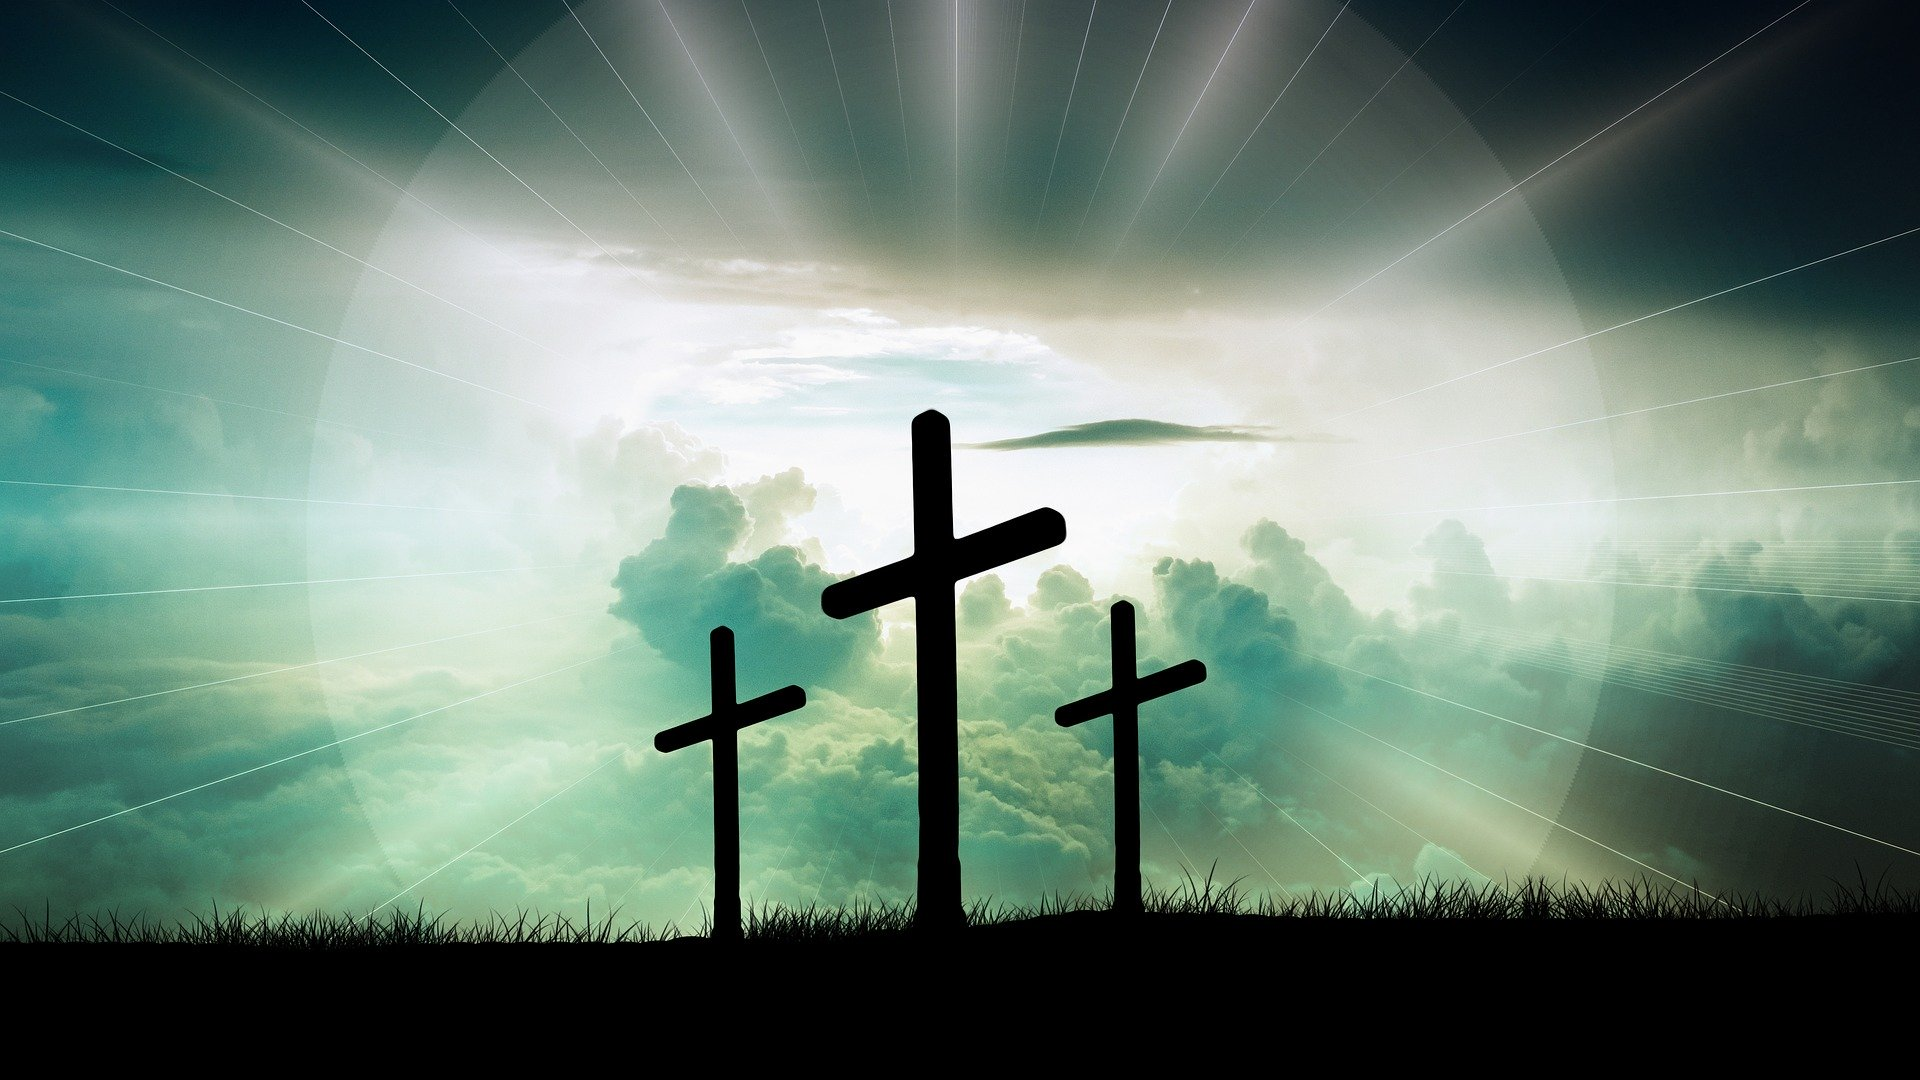 The cross of faith